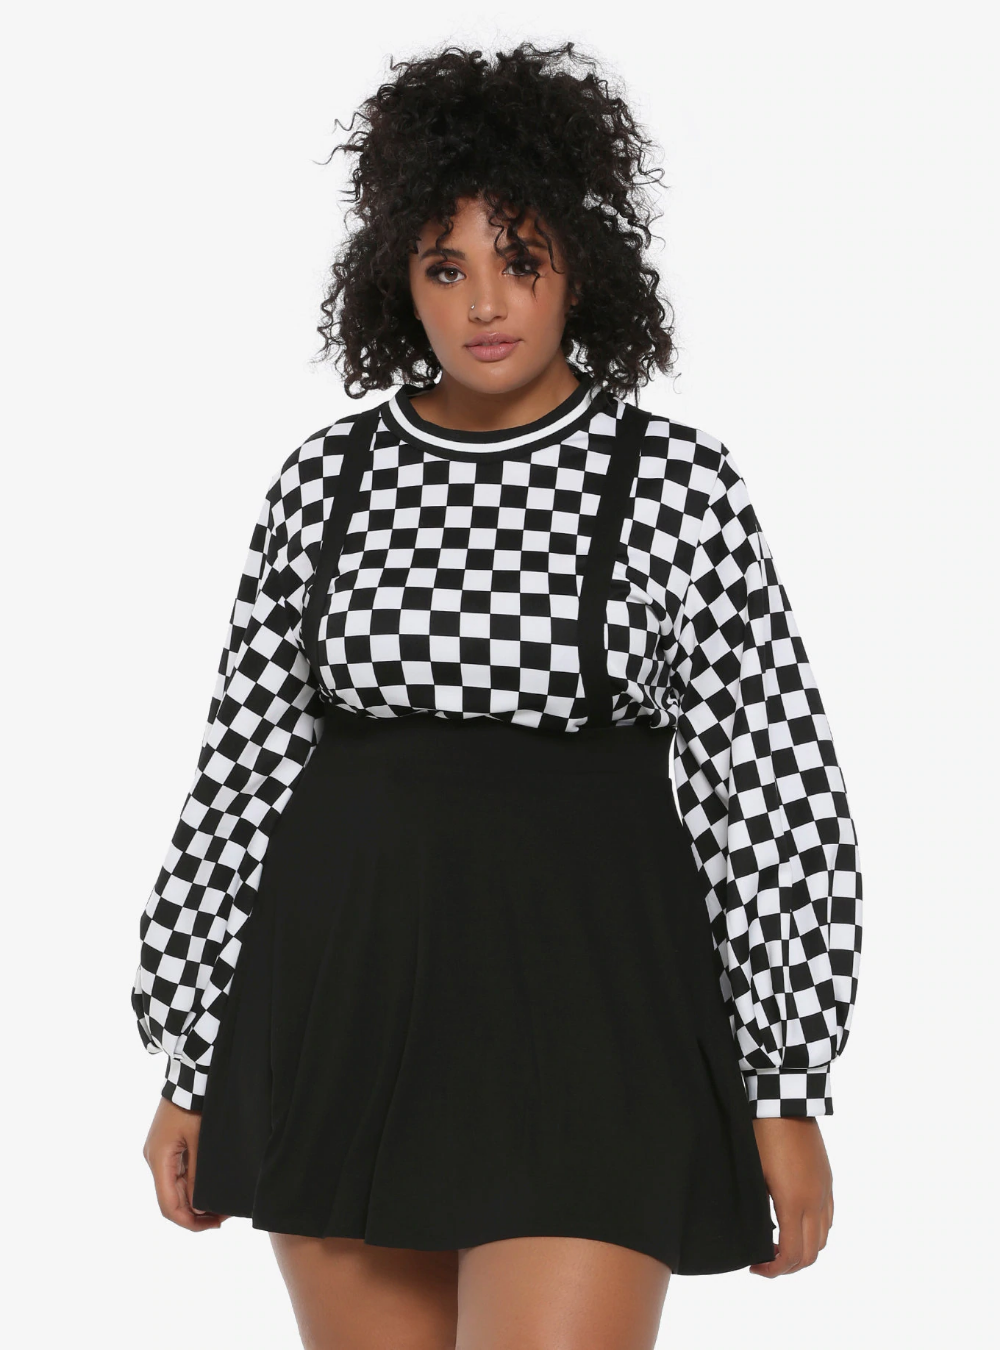 Black Suspender Circle Skirt Plus Size Suspenders Suspenders Suspenders Aesthetic In 2020 Black Circle Skirts Plus Size Outfits Plus Size Grunge